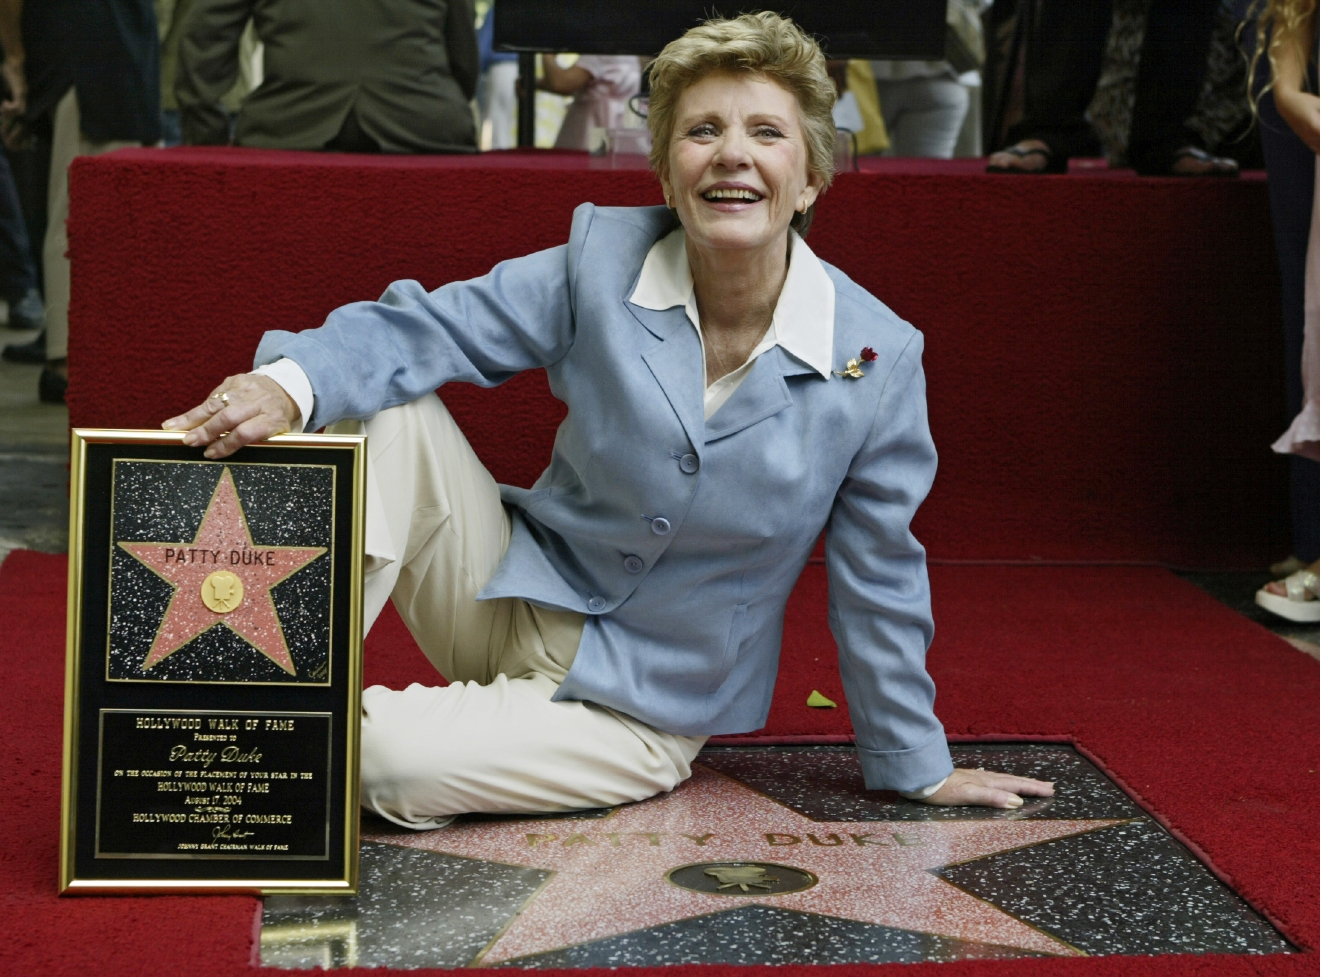 FILE - In this Aug. 17, 2004 file photo, actress Patty Duke is honored with a star on the Hollywood Walk of Fame in Los Angeles.Duke, who won an Oscar as a child at the start of an acting career that continued through her adulthood, died Tuesday, March 29, 2016, of sepsis from a ruptured intestine. She was 69. (AP Photo/Damian Dovarganes, File)